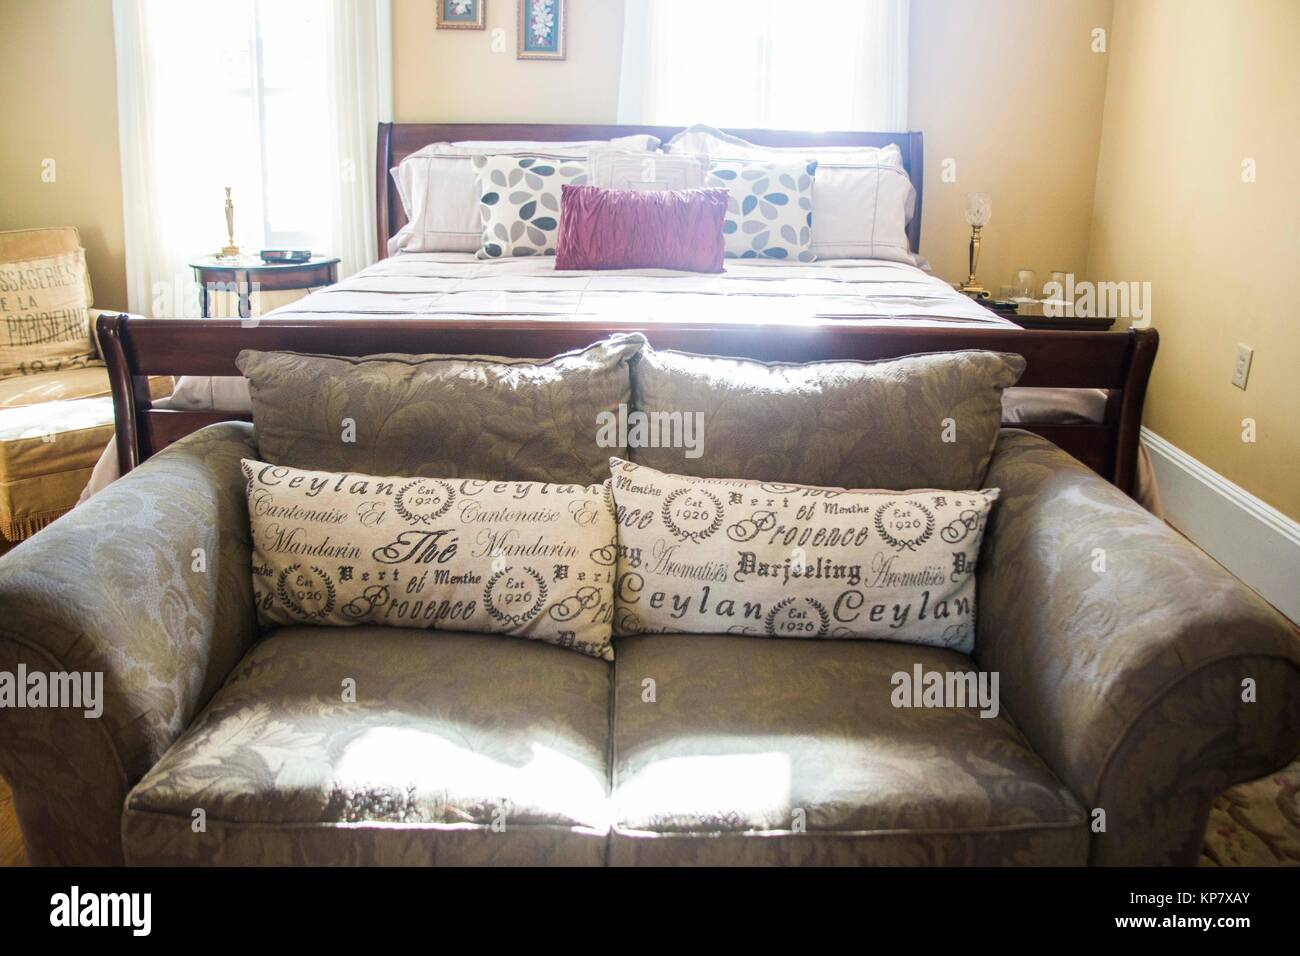 Inside the bedroom of a bed and breakfast. We can see a gorgeous coach adorned with plush pillows, to be used by - Stock Image